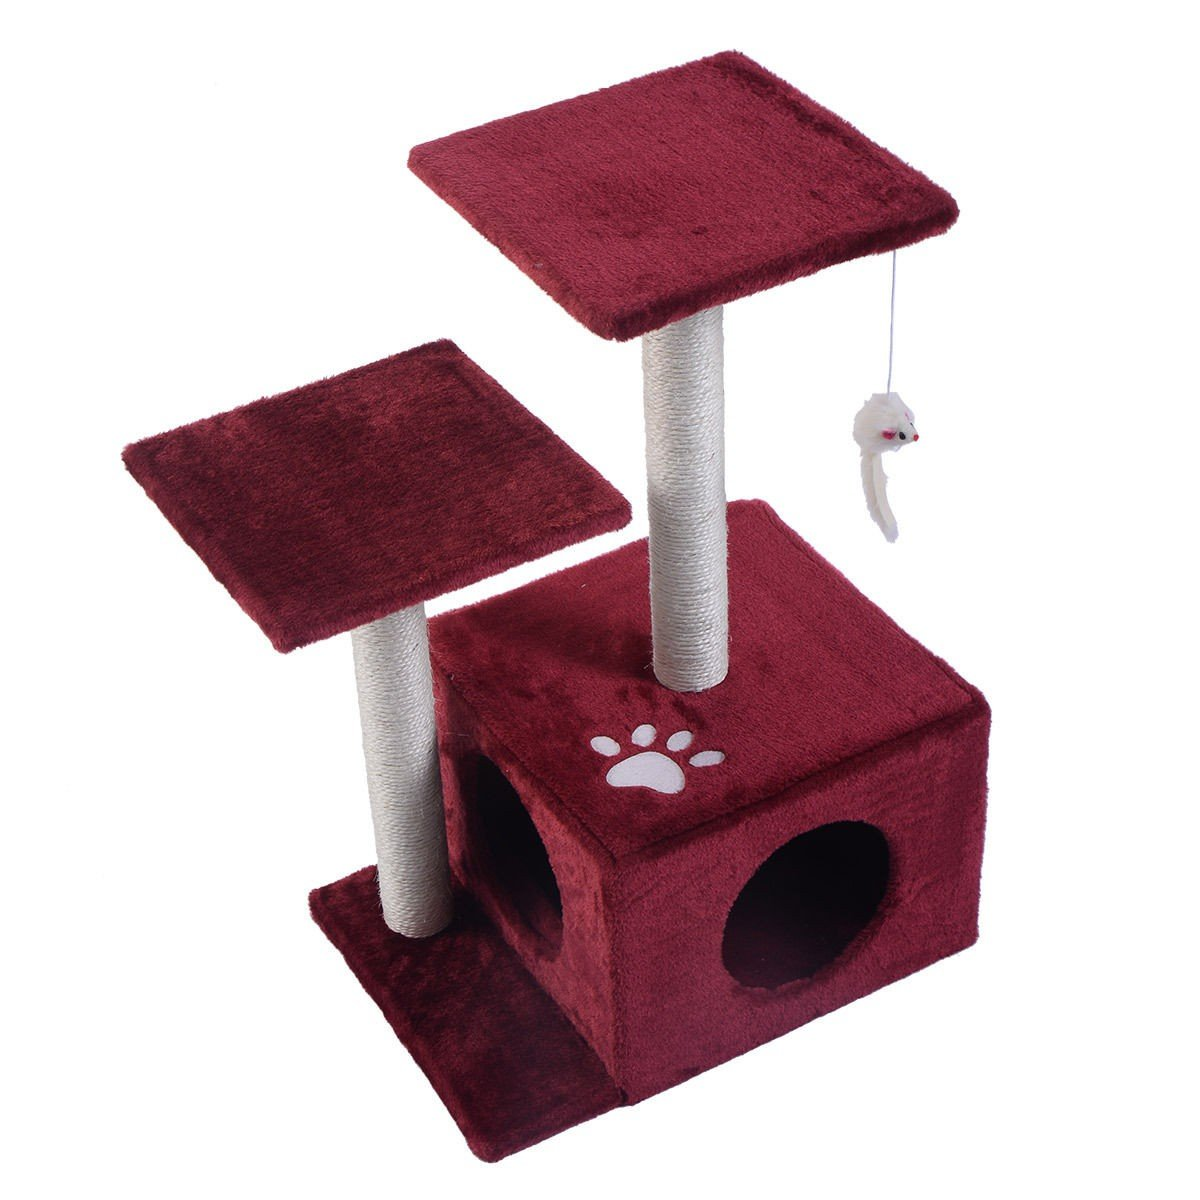 27'' Cat Tree Deluxe Condo Furniture Play Toy Scratch Post Kitten Pet House - Beautifully Designed With Fun Activities For Your Cat To Scratch, Climb, Jump, Play And Even To Sleep Or Lounge On (Red)